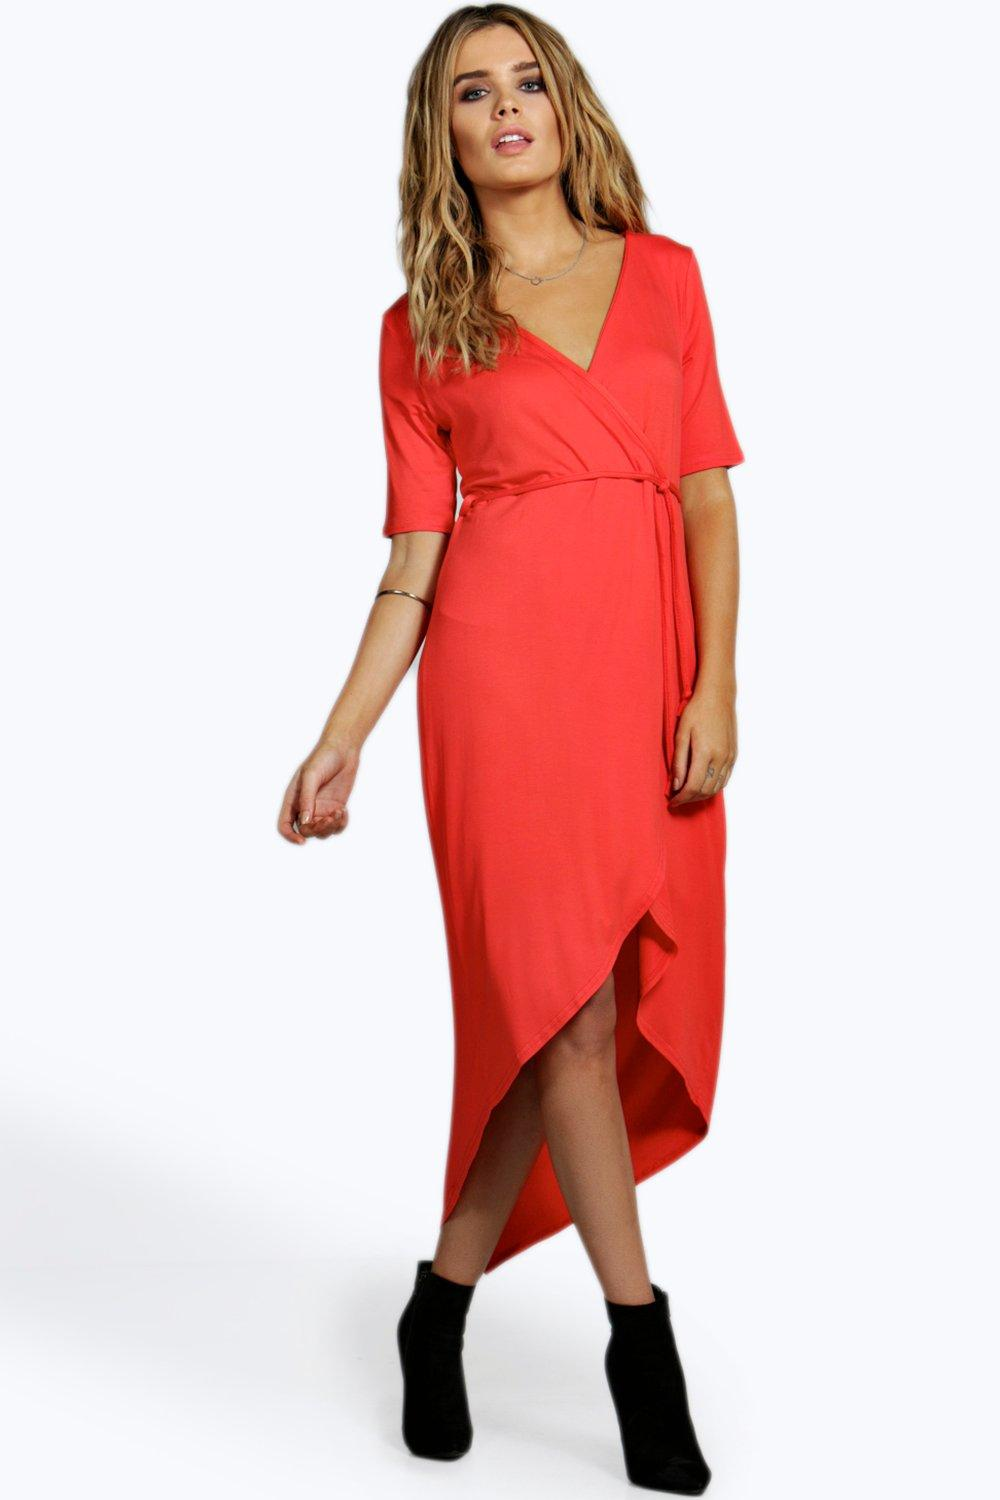 Shop dresses for women at New York & Company. Choose from our formal, casual, and work collections, including maxi, lace, high low and more.